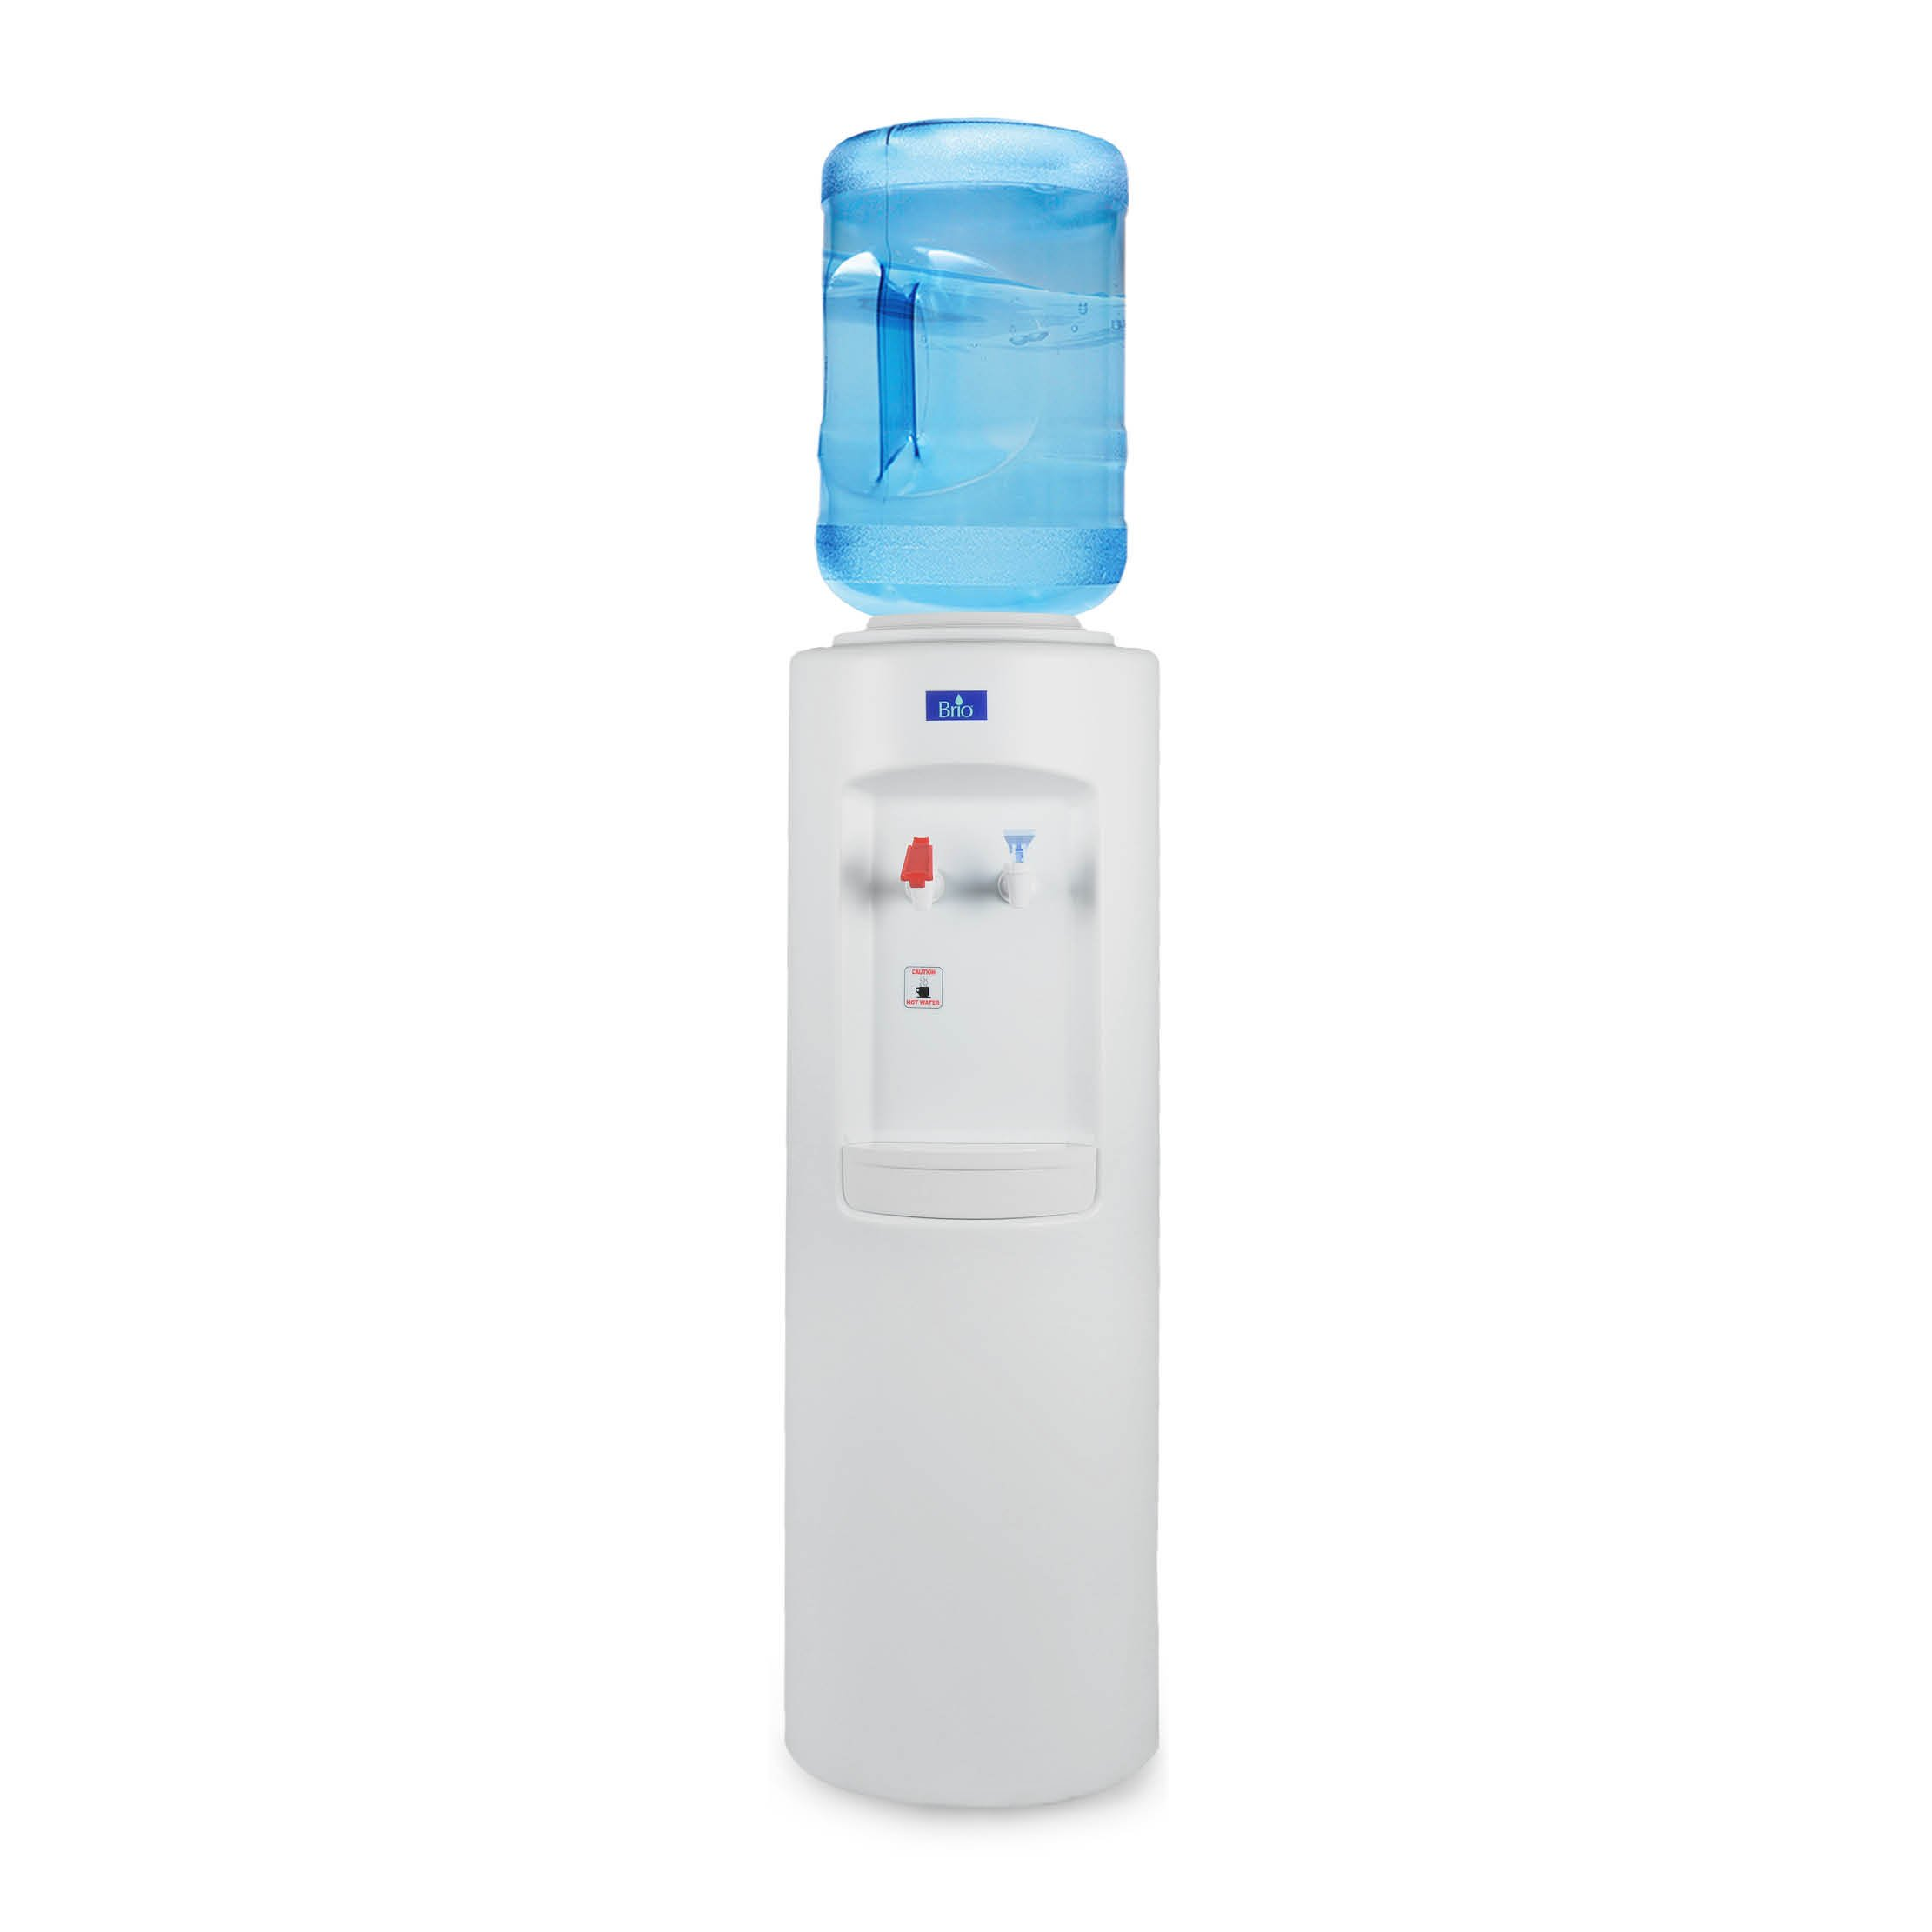 Brio CL500 Commercial Grade Hot and Cold Top load Water Dispenser Cooler - Essential Series by Brio